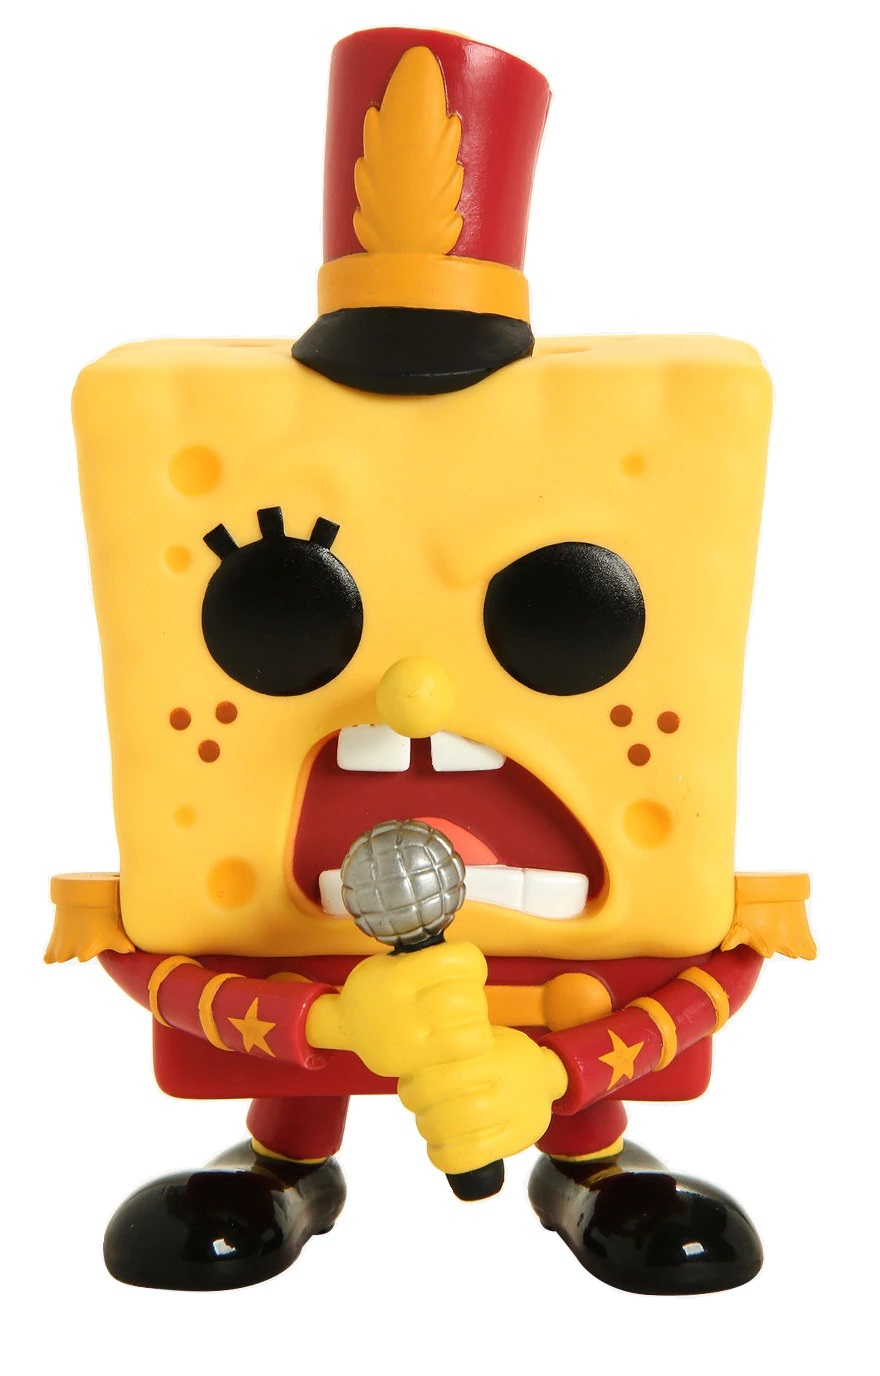 Spongebob Squarepants (Band Outfit) - Pop! Vinyl Figure image